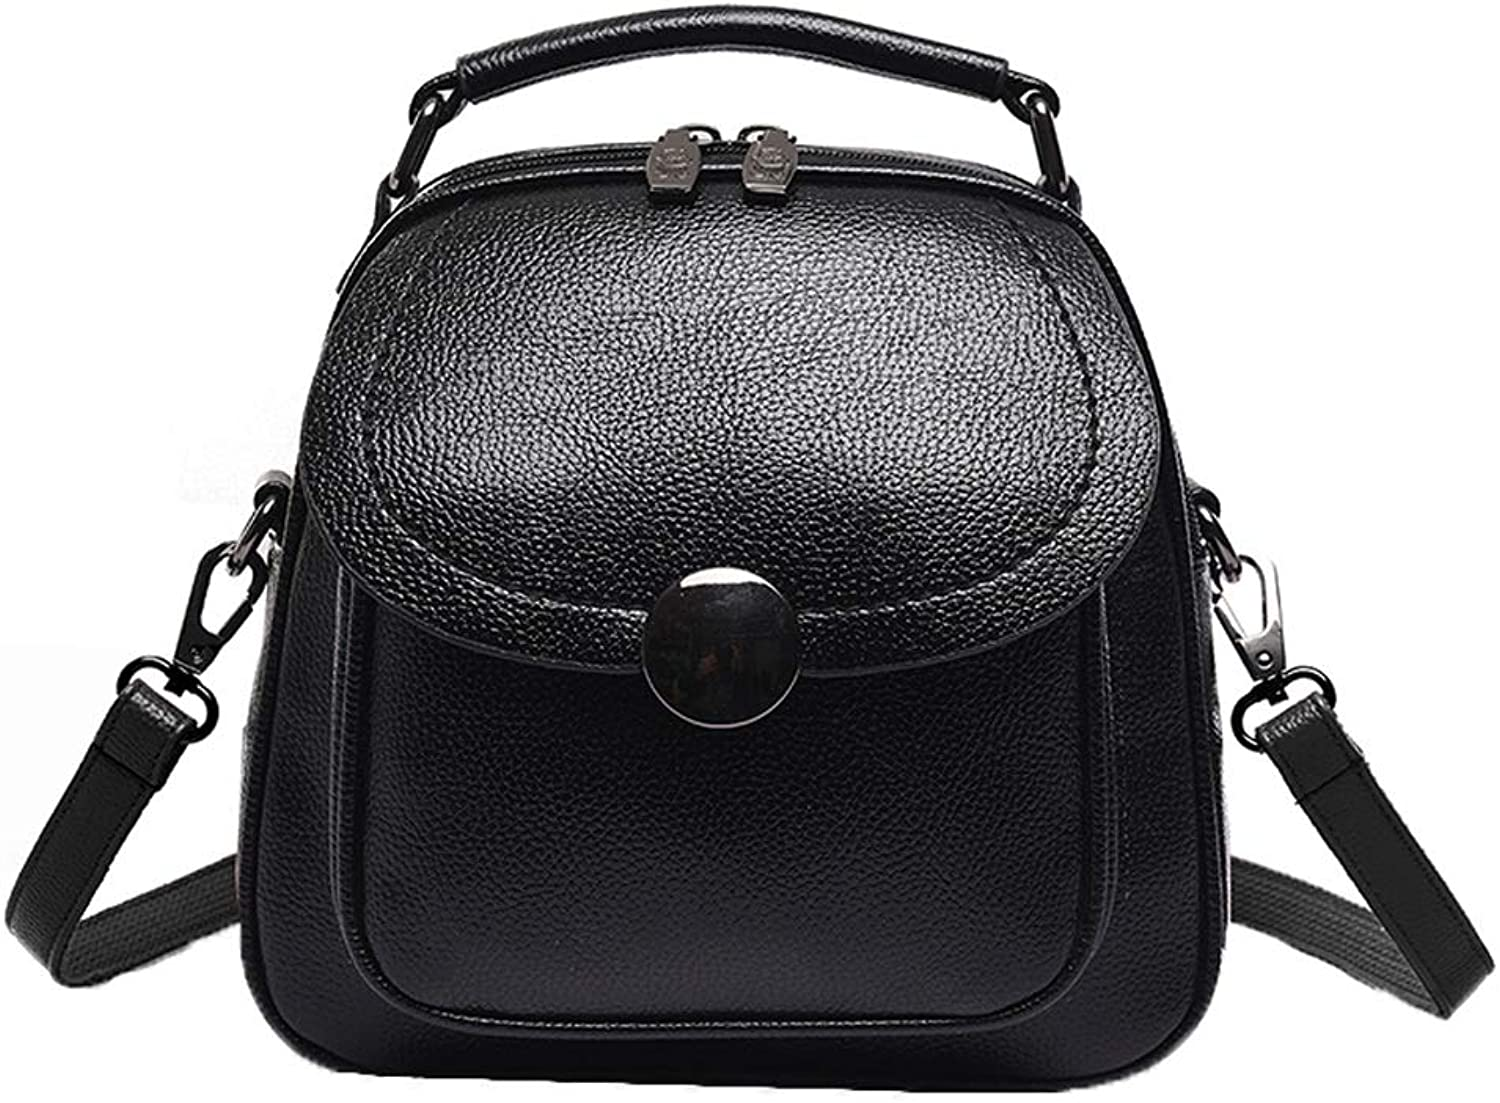 Backpack Handbags New, Versatile Fashion Girl Small Backpack Bag Leisure Travel Bag, Notebook Bag (color   Black, Size   23cm13cm22.5cm)